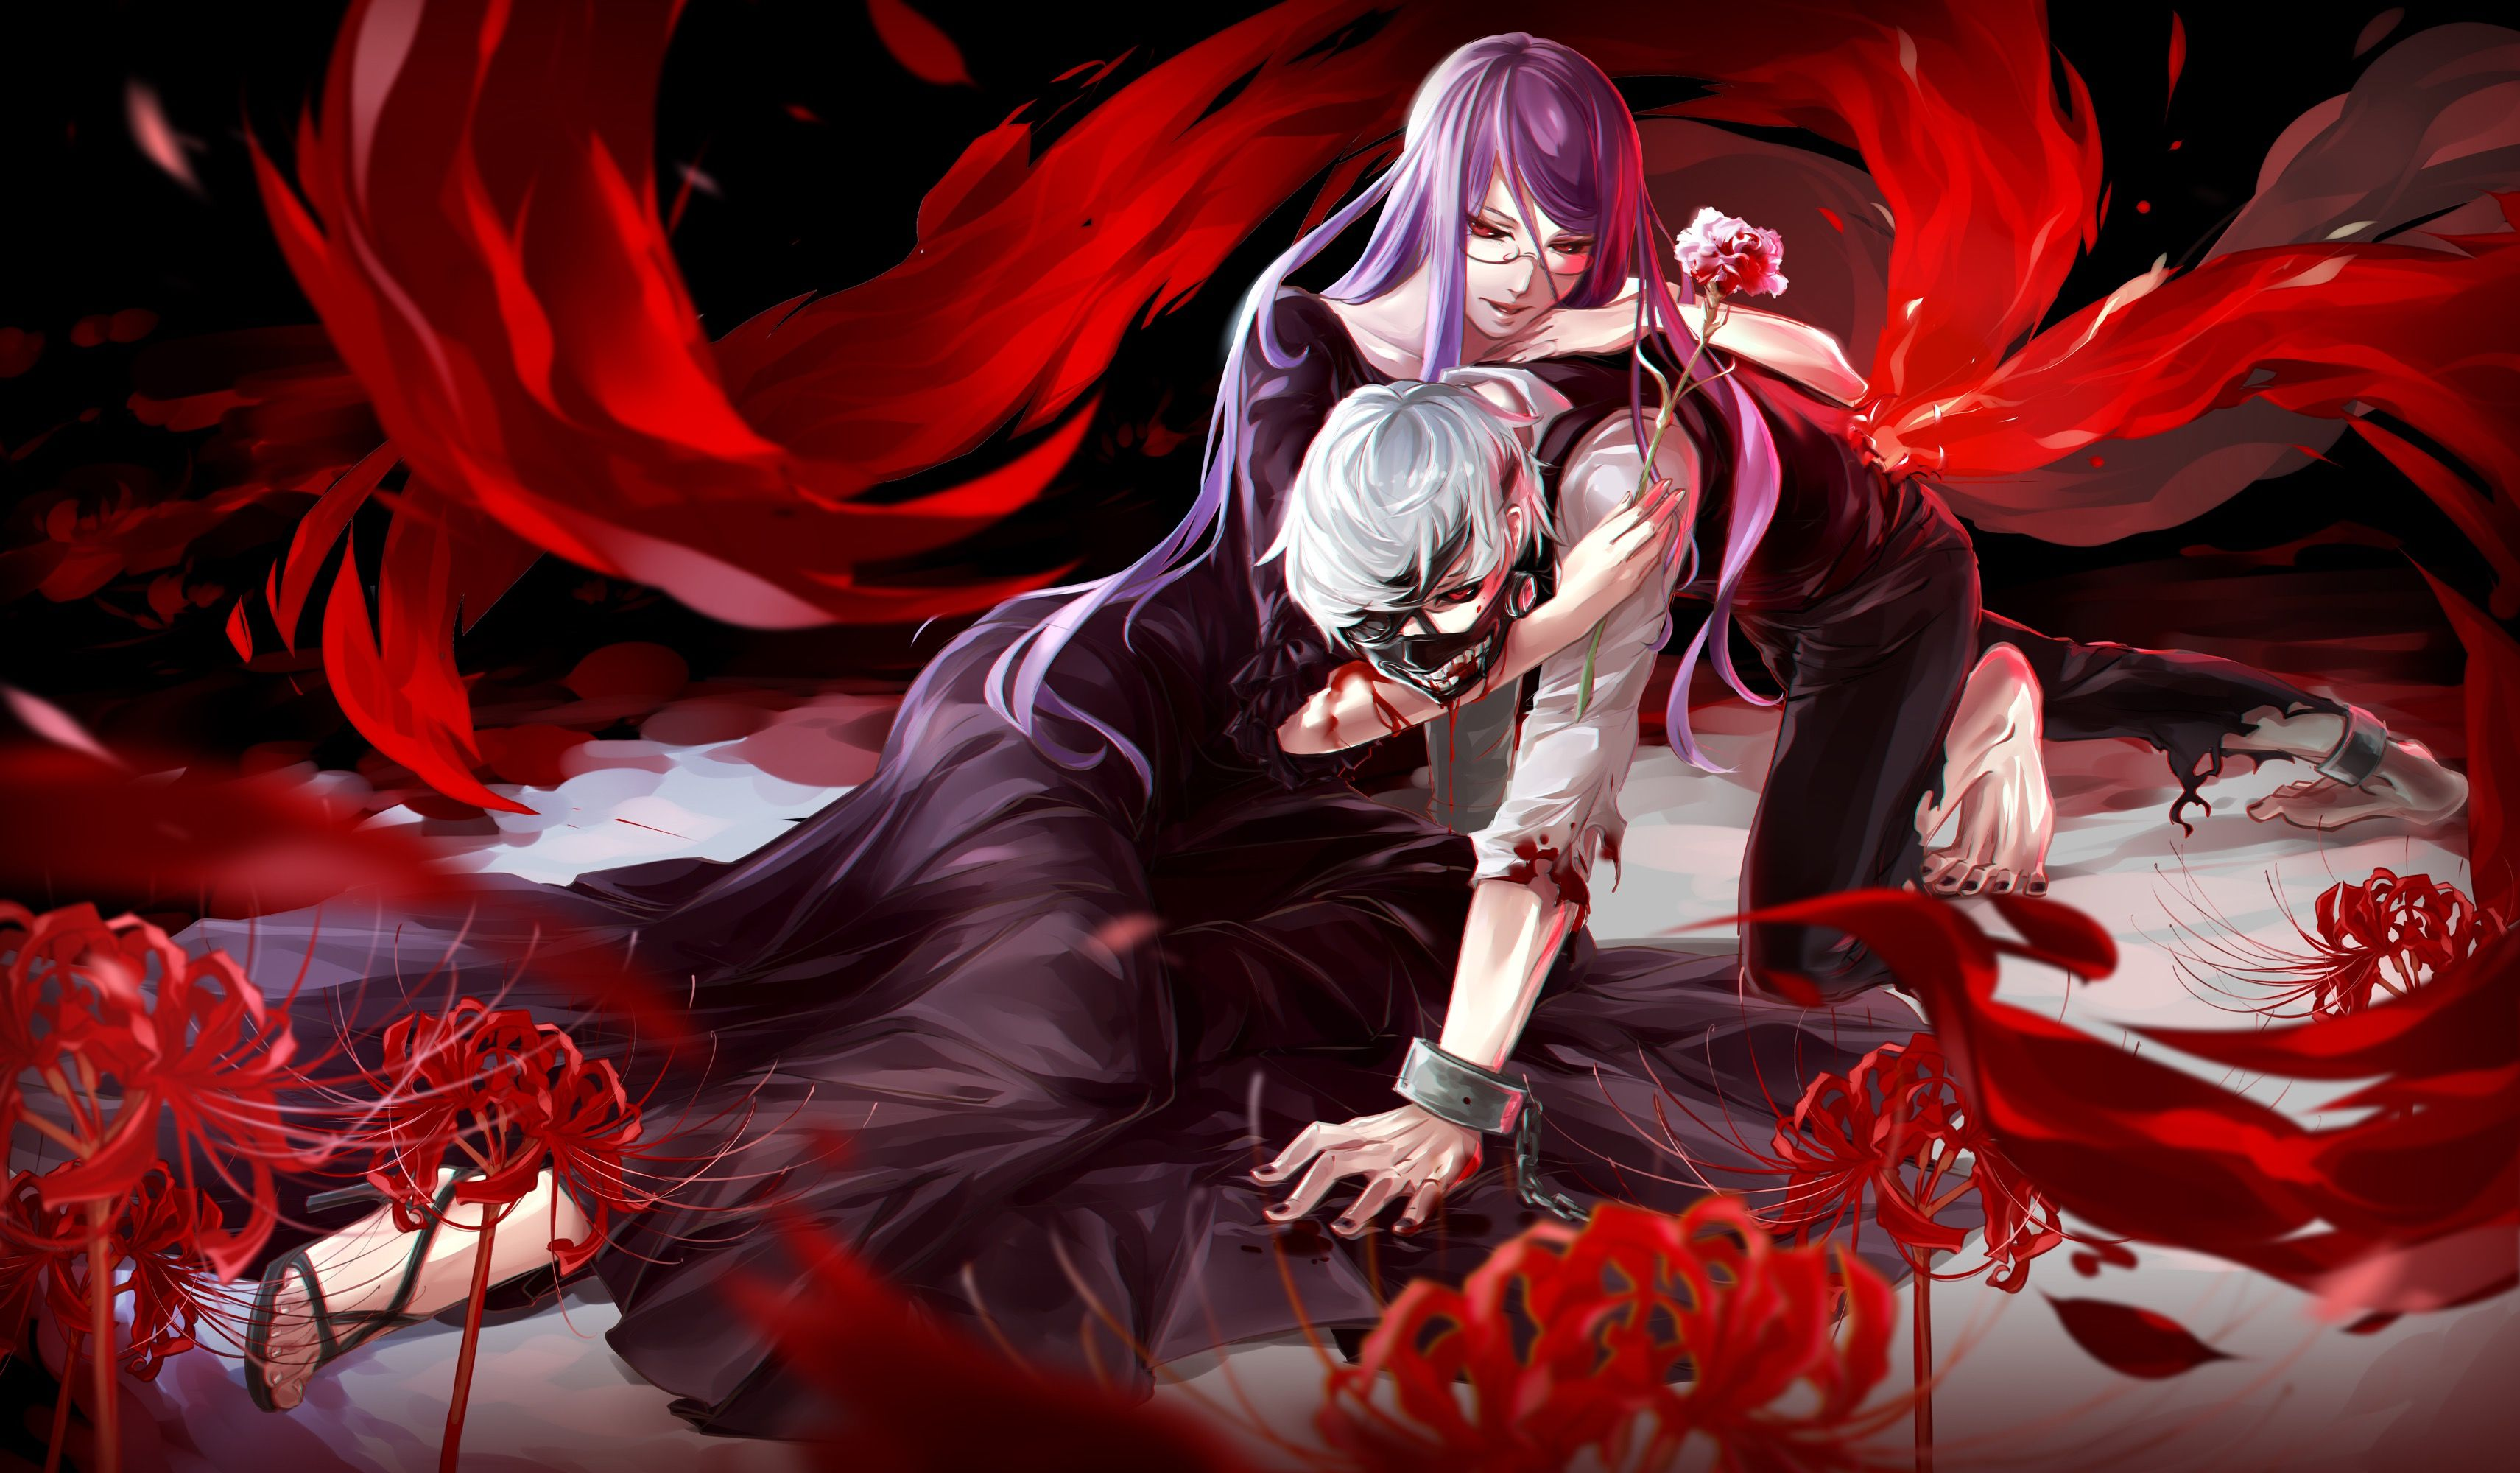 Tokyo Ghoul Laptop Wallpapers Top Free Tokyo Ghoul Laptop Backgrounds Wallpaperaccess